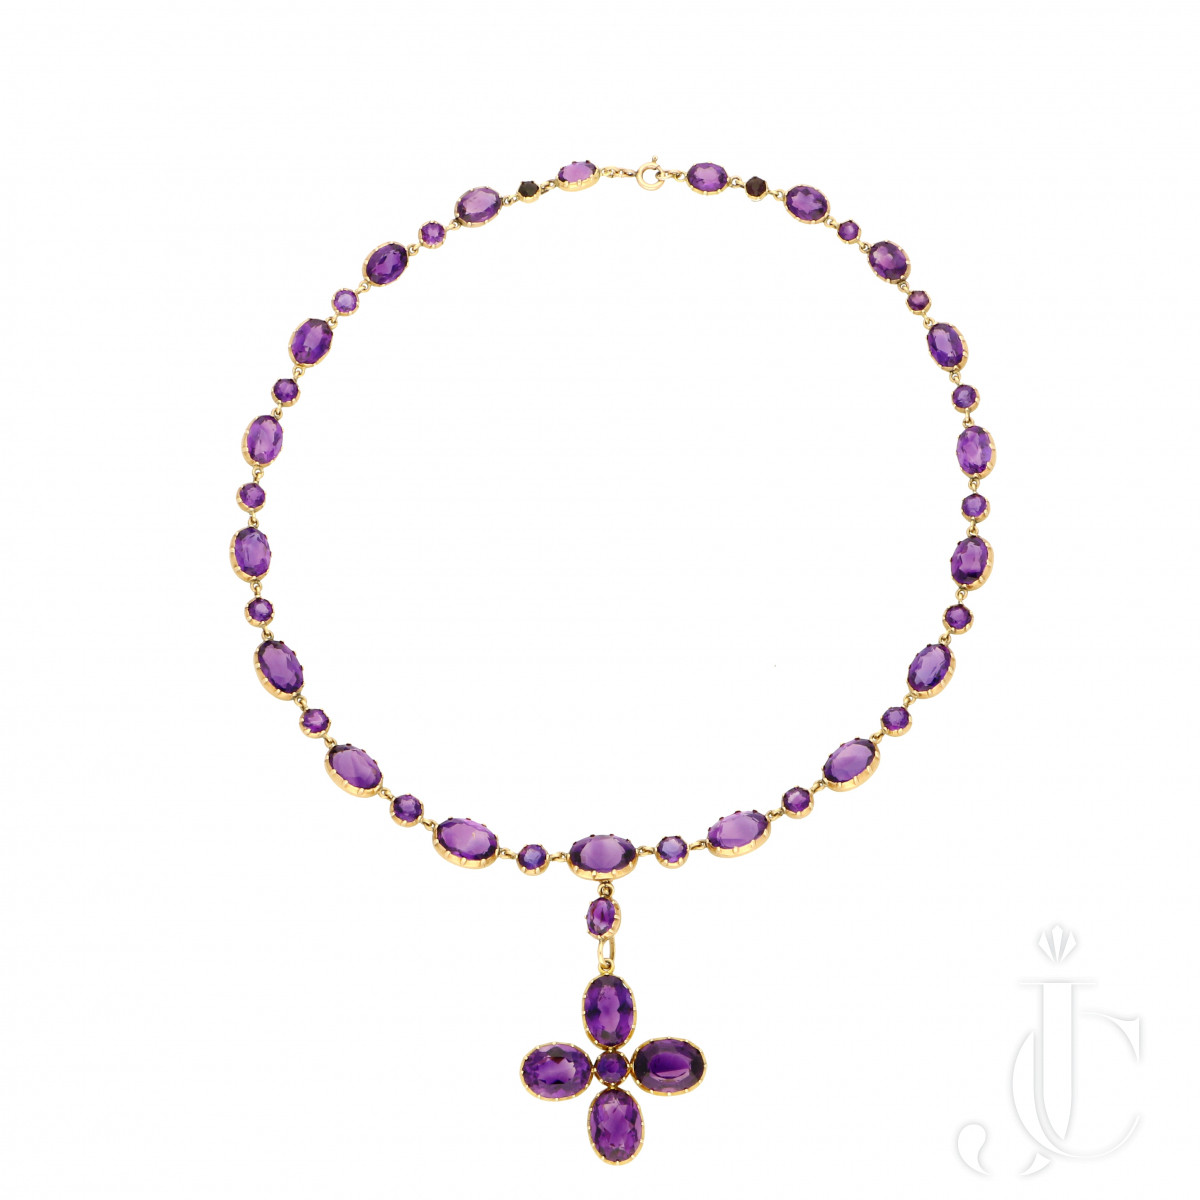 Victorian - Amethyst 18ct Gold Necklace c.1880